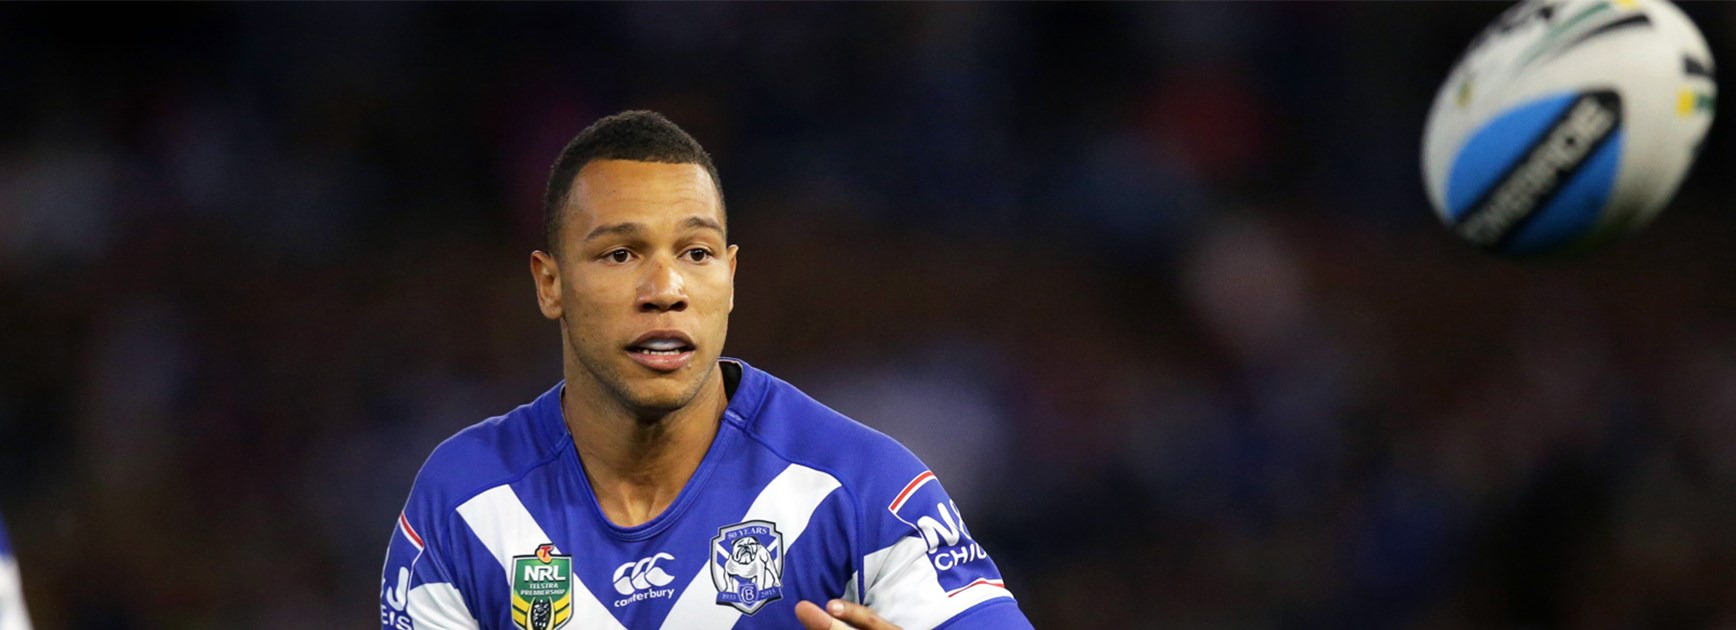 Moses Mbye has been one of the success stories of the Bulldogs' 2015 season.